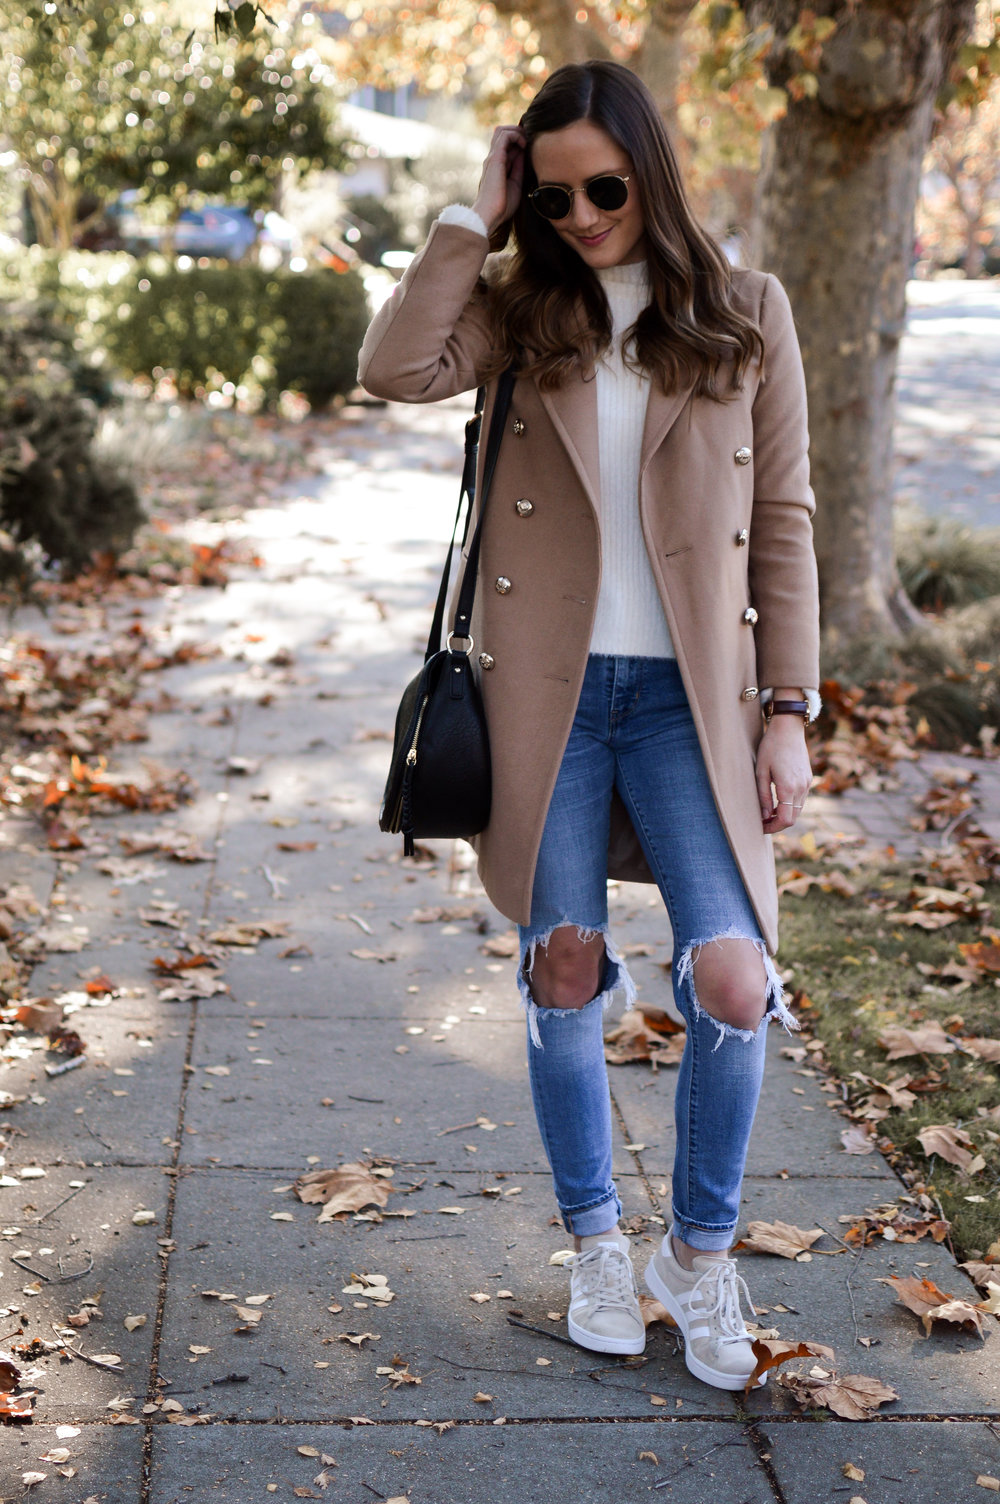 Camel Coat and Sneakers